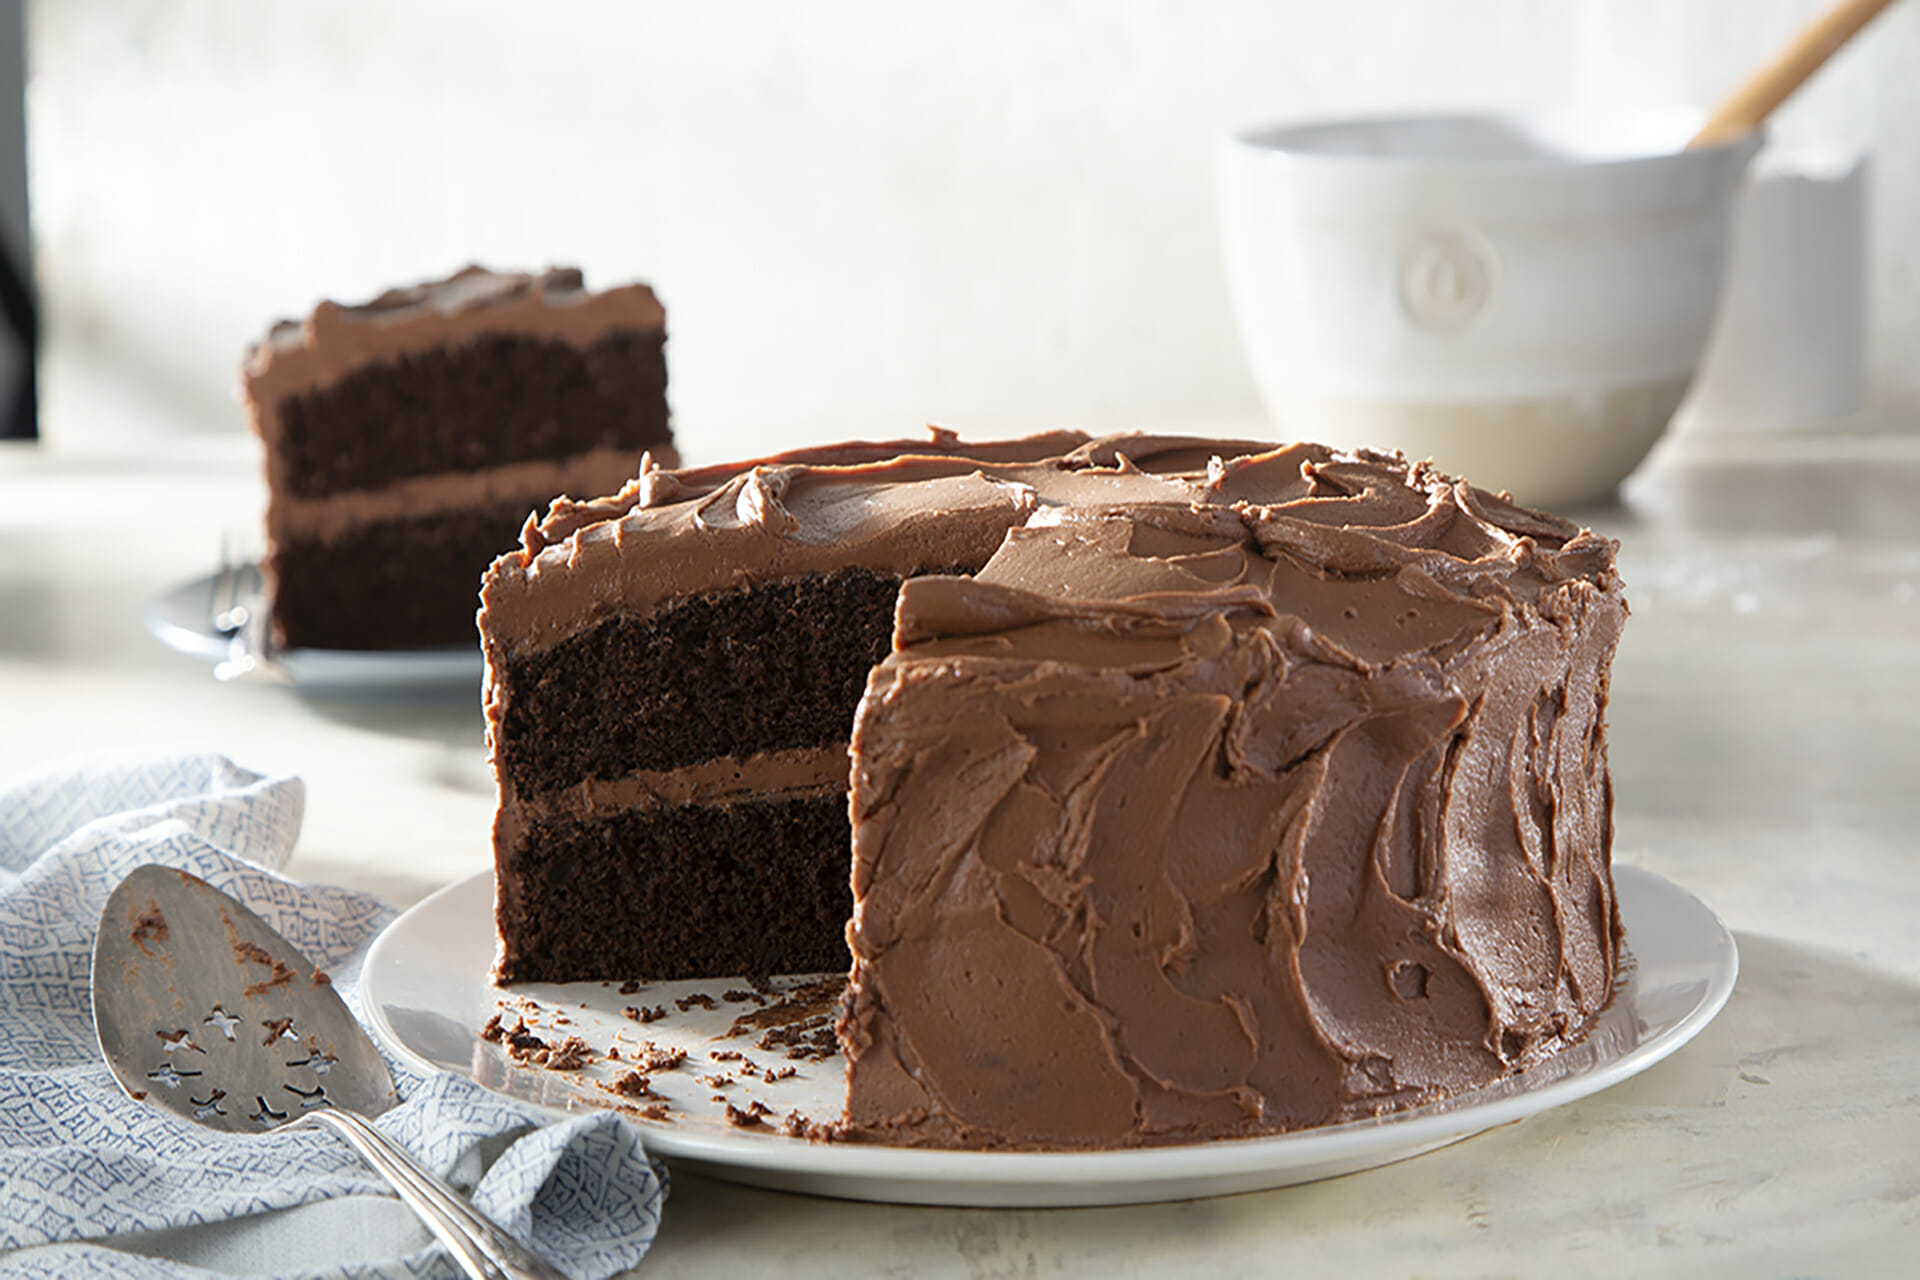 Chocolate Cake With Plated Slice